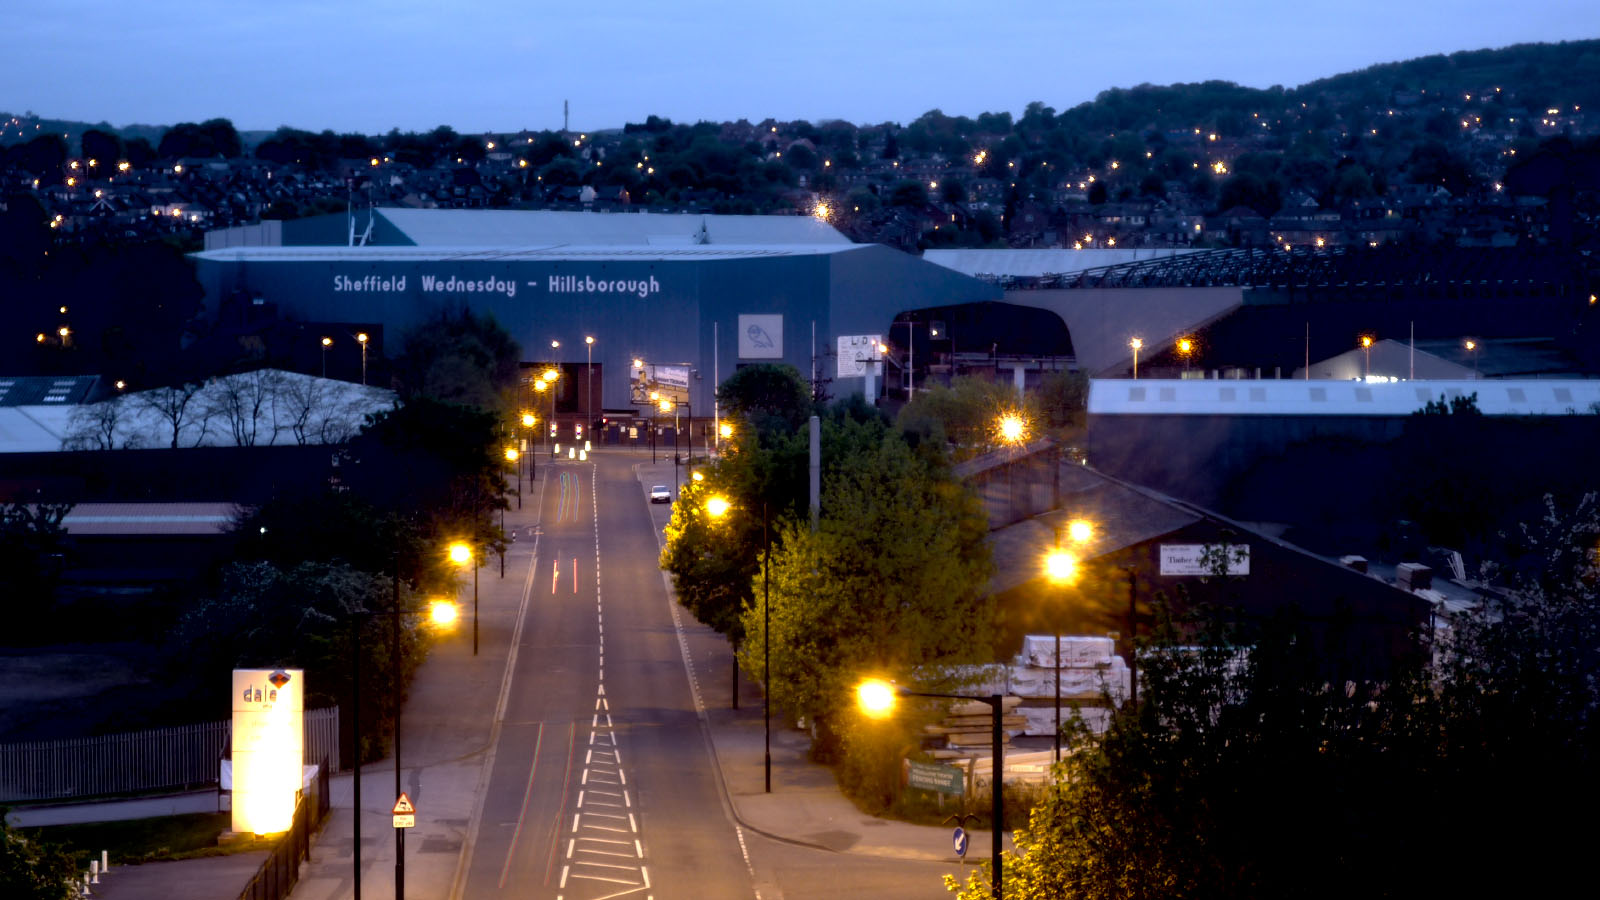 El Estadio de Hillsborough en una imagen actual